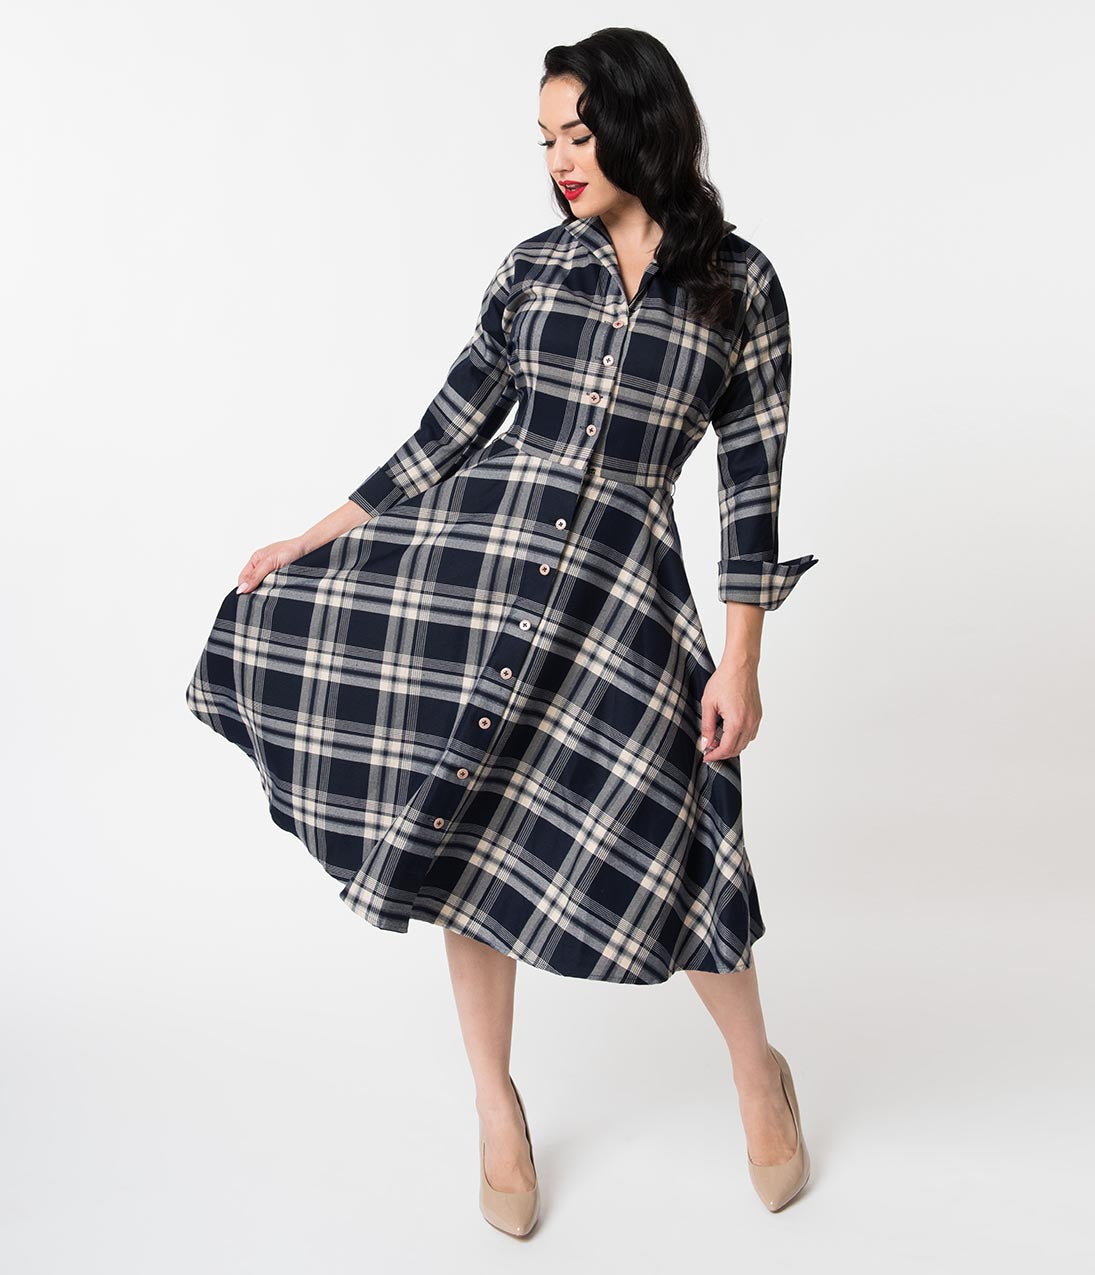 1950s Swing Dresses | 50s Swing Dress Unique Vintage 1950S Style Navy Blue Plaid Sleeved Brooklyn Shirtdress $118.00 AT vintagedancer.com